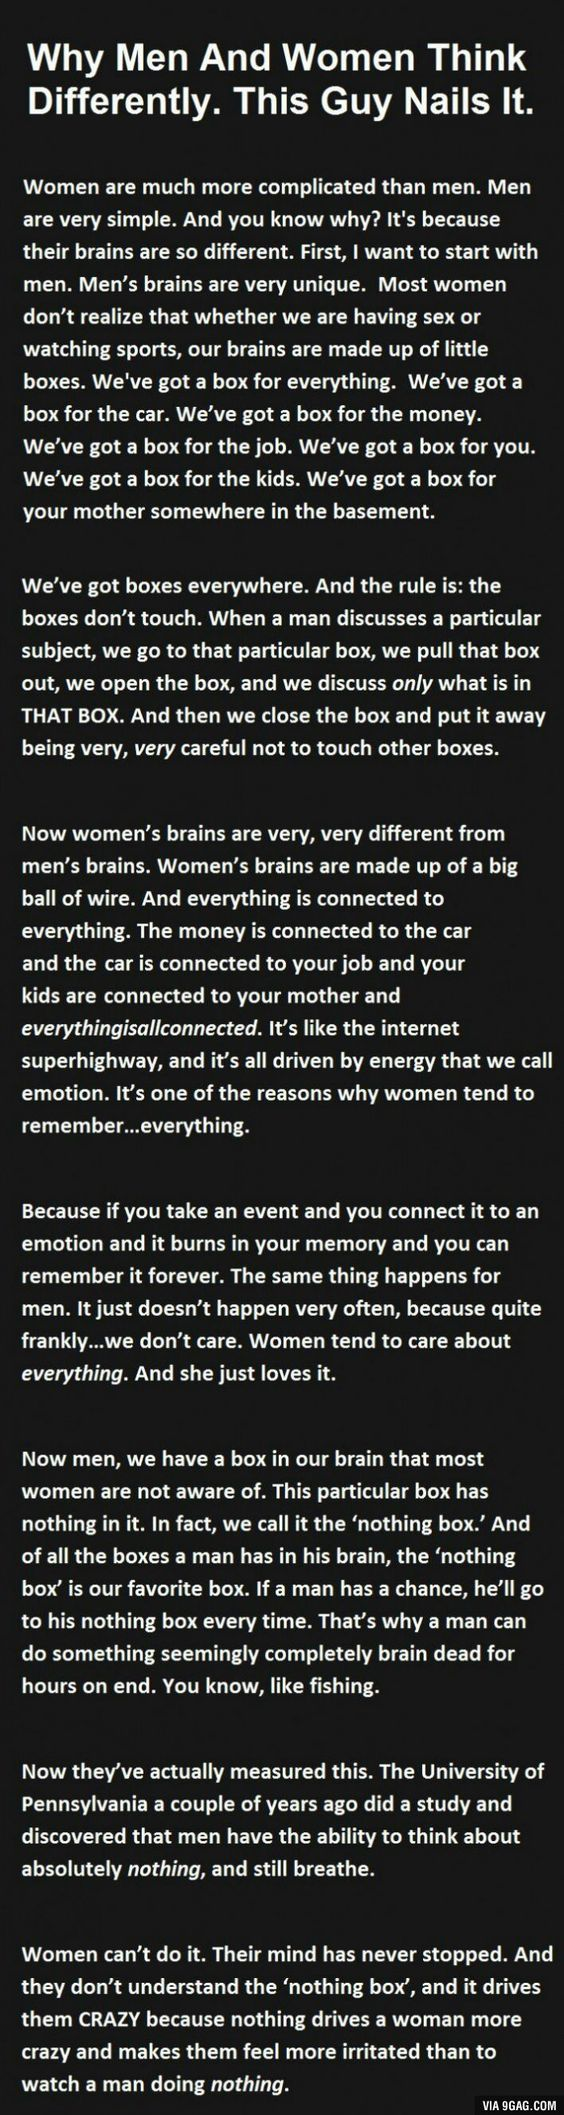 Quotes About Men And Women Why Men And Women Think Differentlythis Guy Nailed It  Box